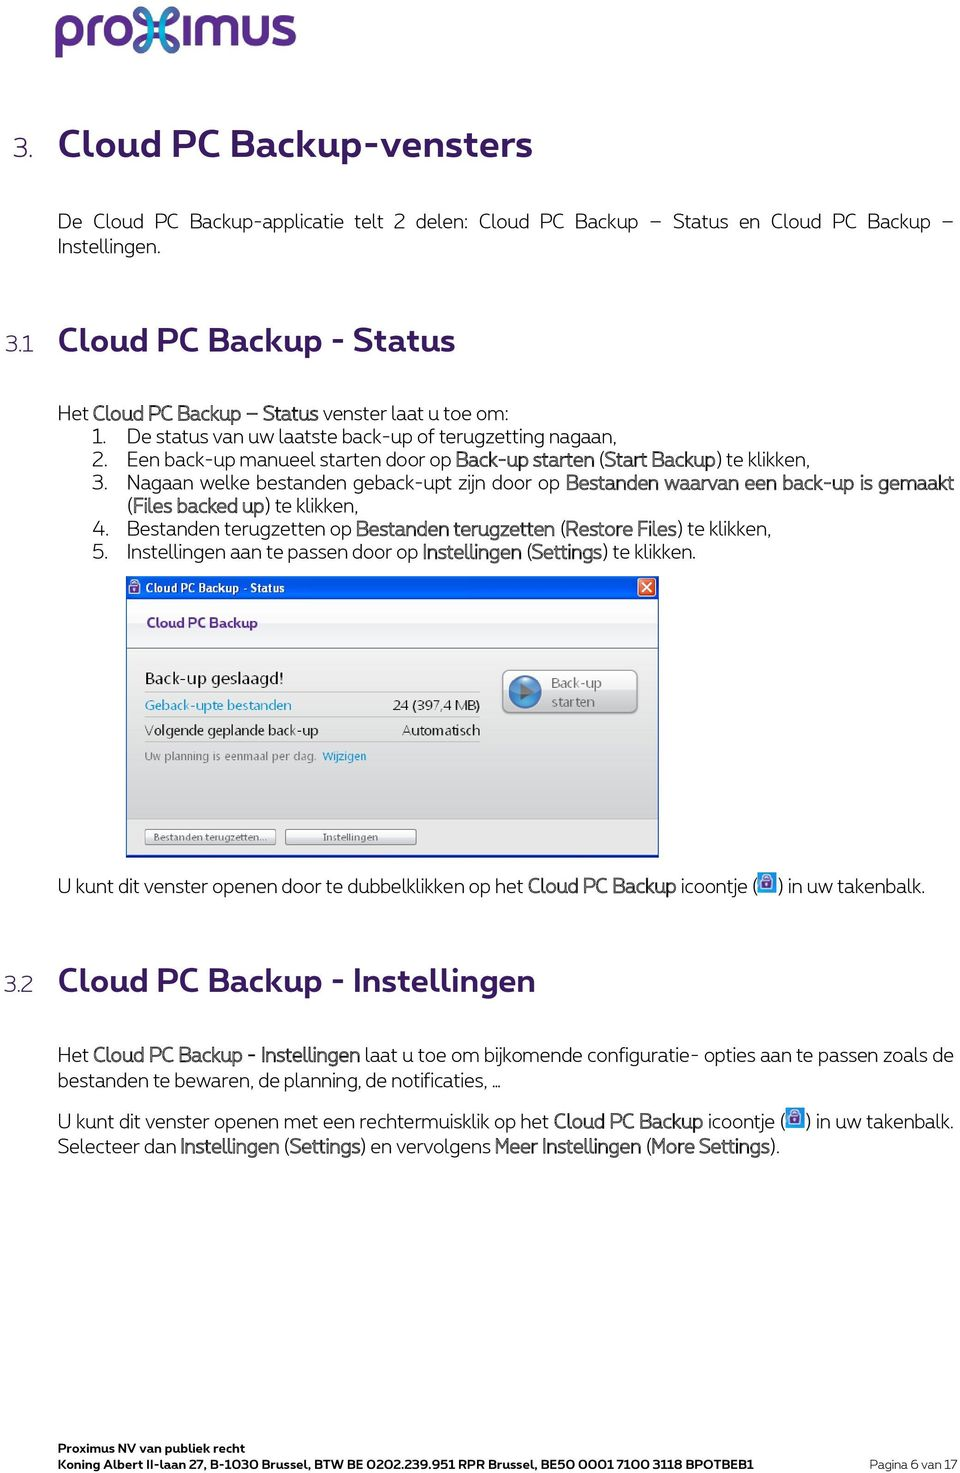 Een back-up manueel starten door op Back-up starten (Start Backup) te klikken, 3.